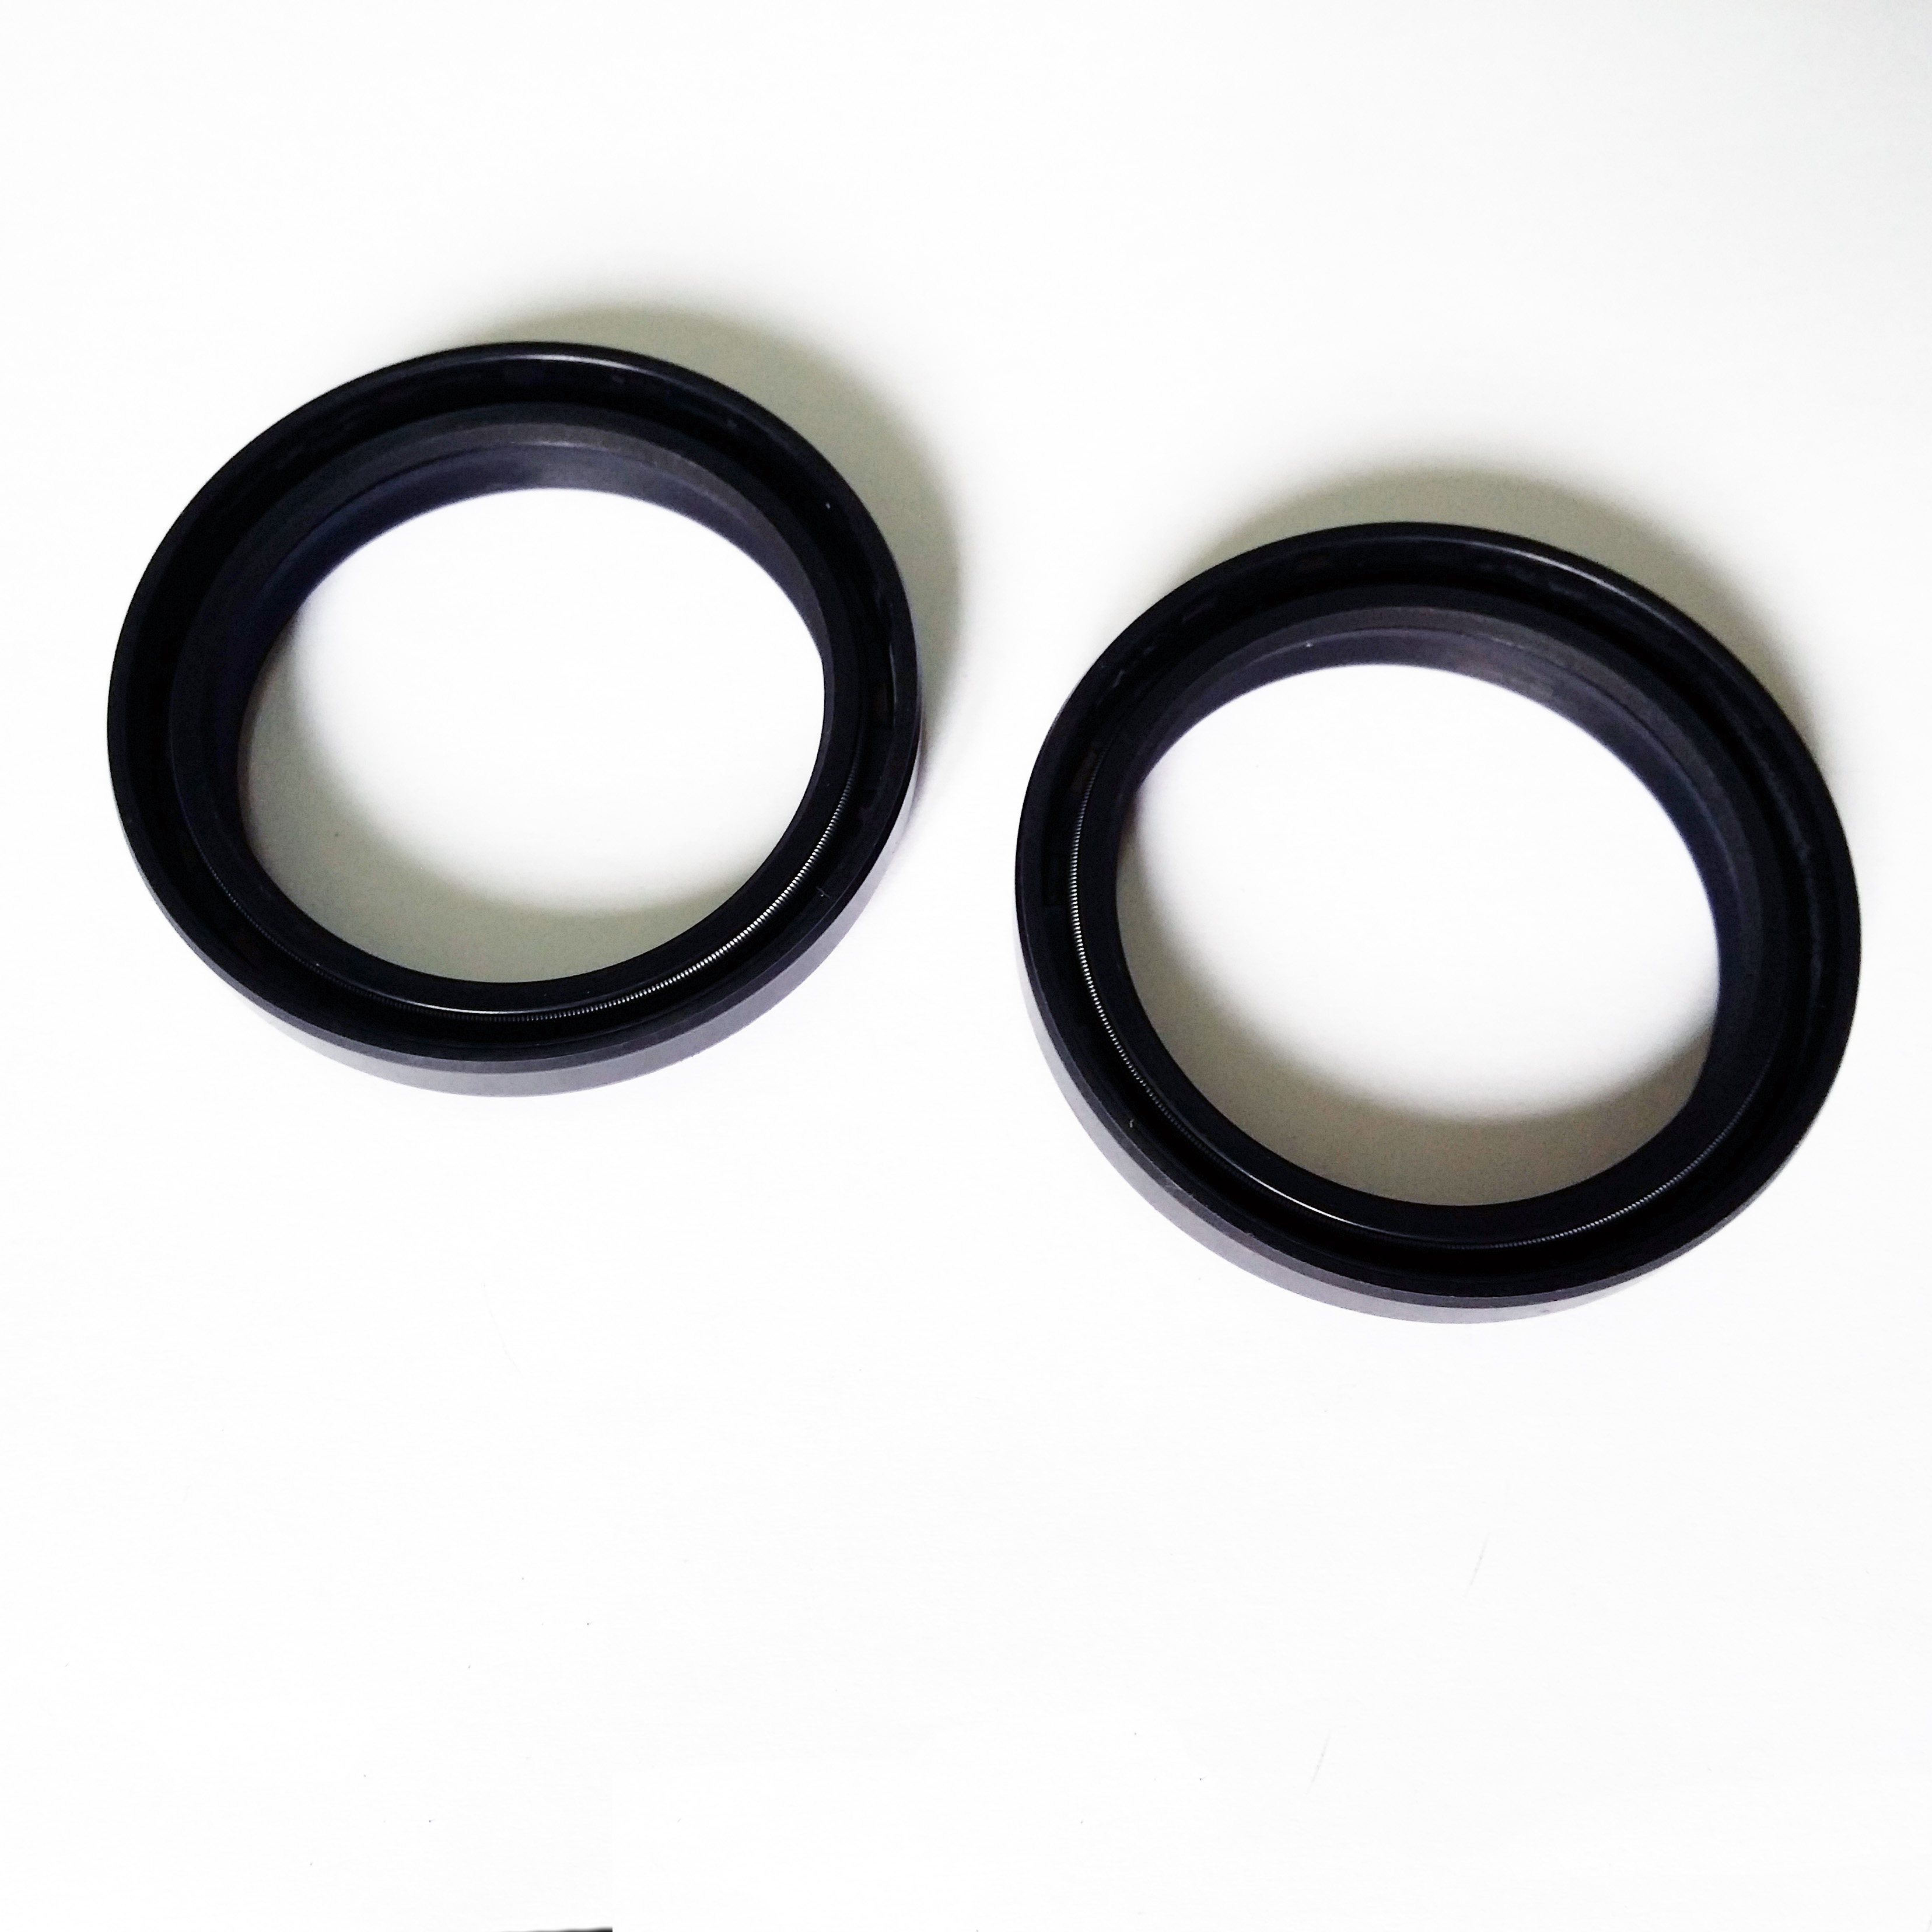 K-Tech Yamaha FZR600 1994-1995 NOK Front Fork Oil Seals 41x53x8/9.5mm